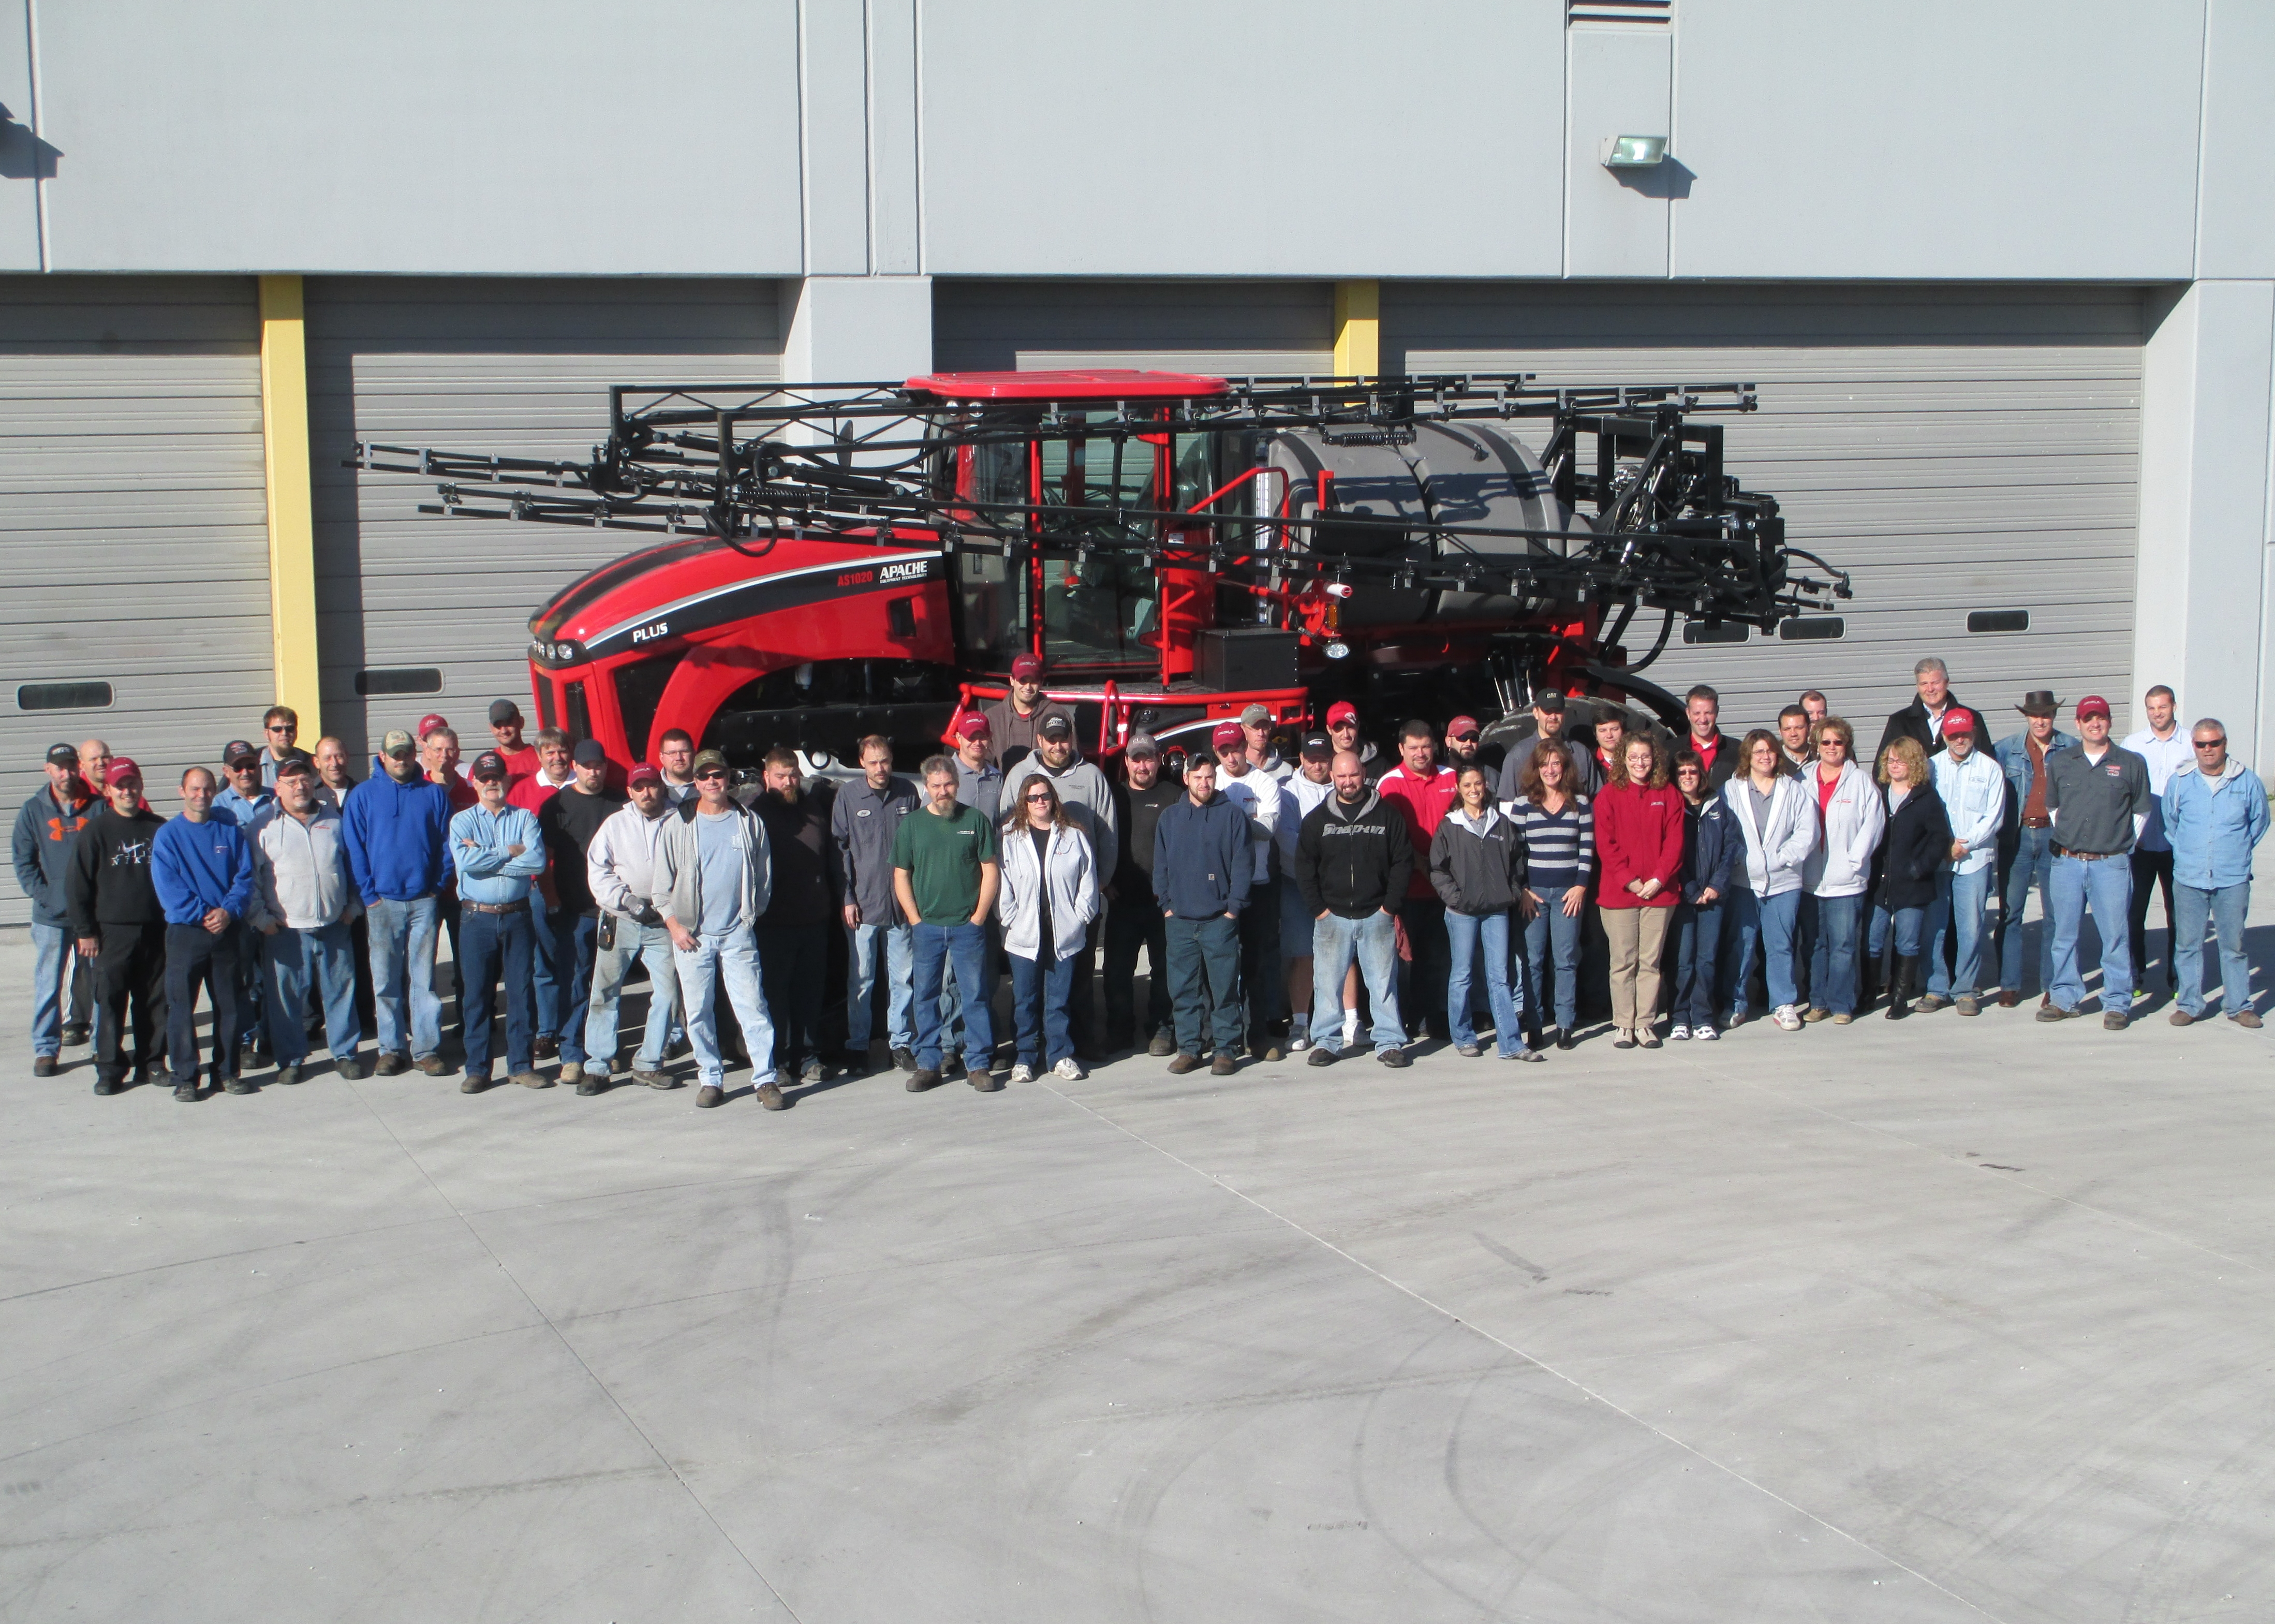 The team built its 70th Apache sprayer in one month, surpassing the previous record of 69 sprayers.